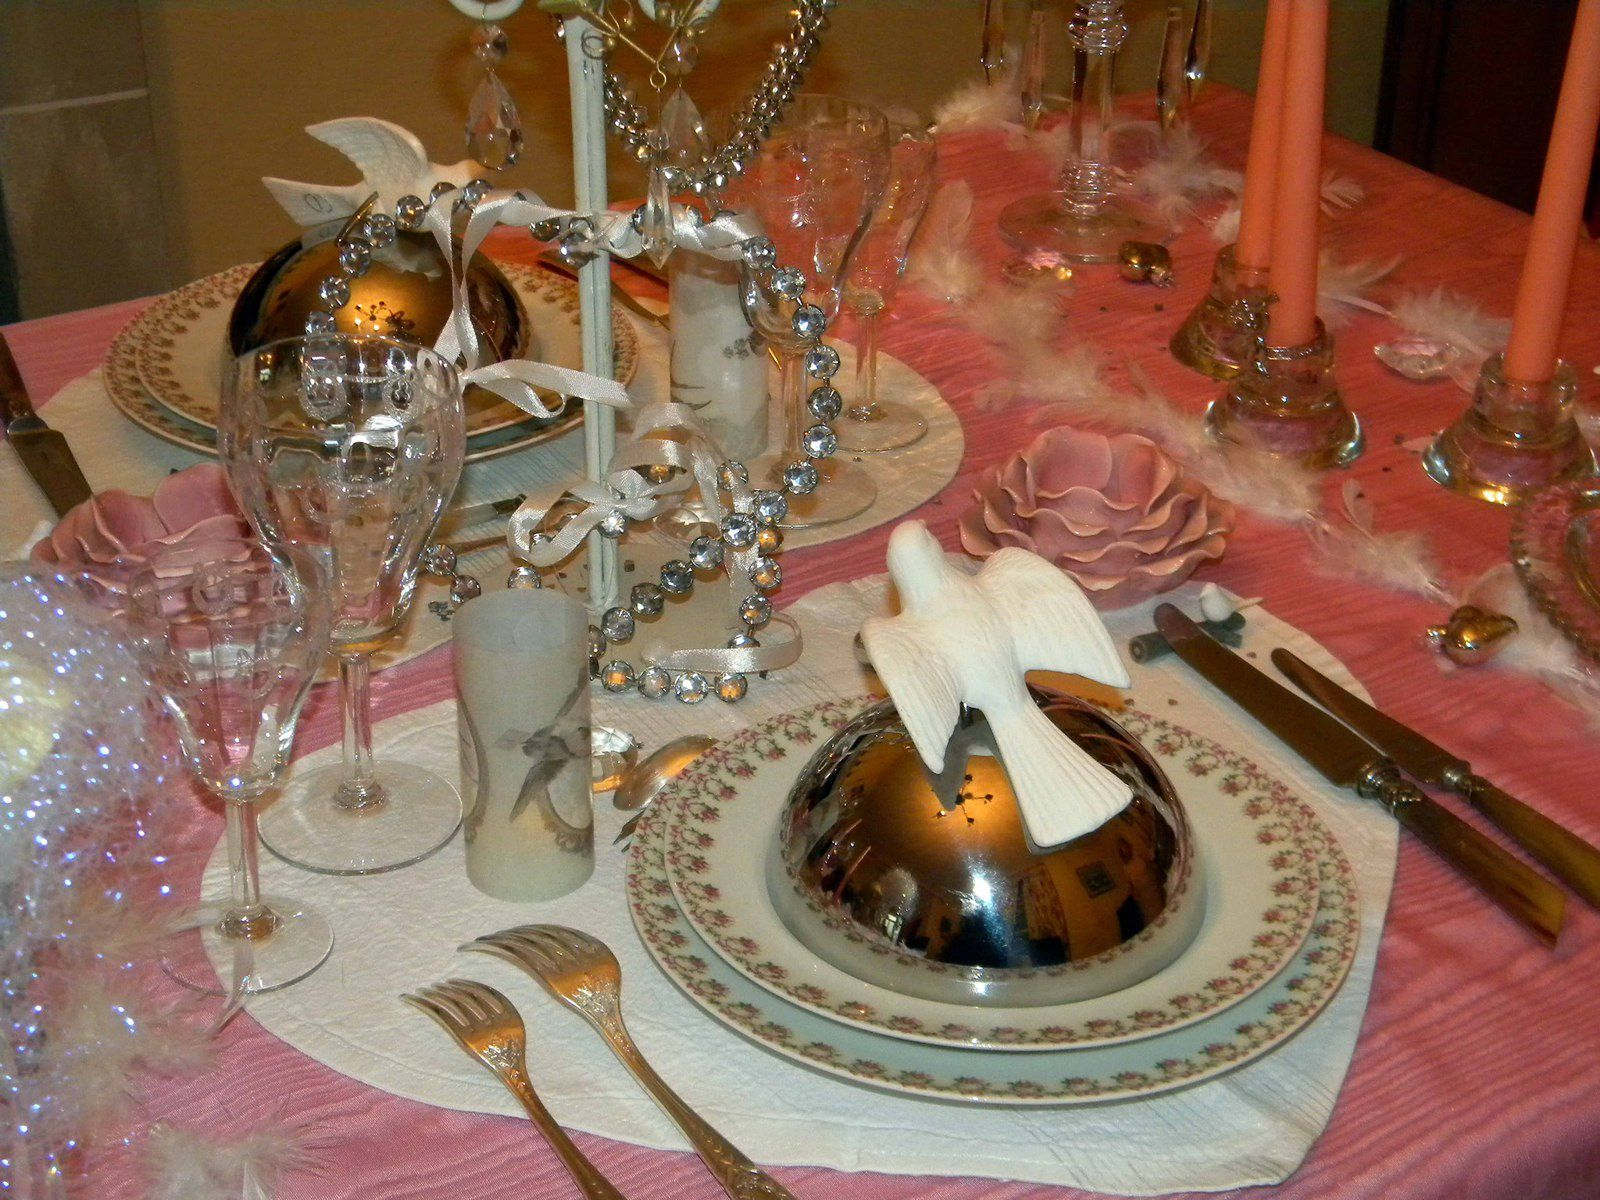 Table de saint valentin romantique le blog de bernard - Table de saint valentin ...